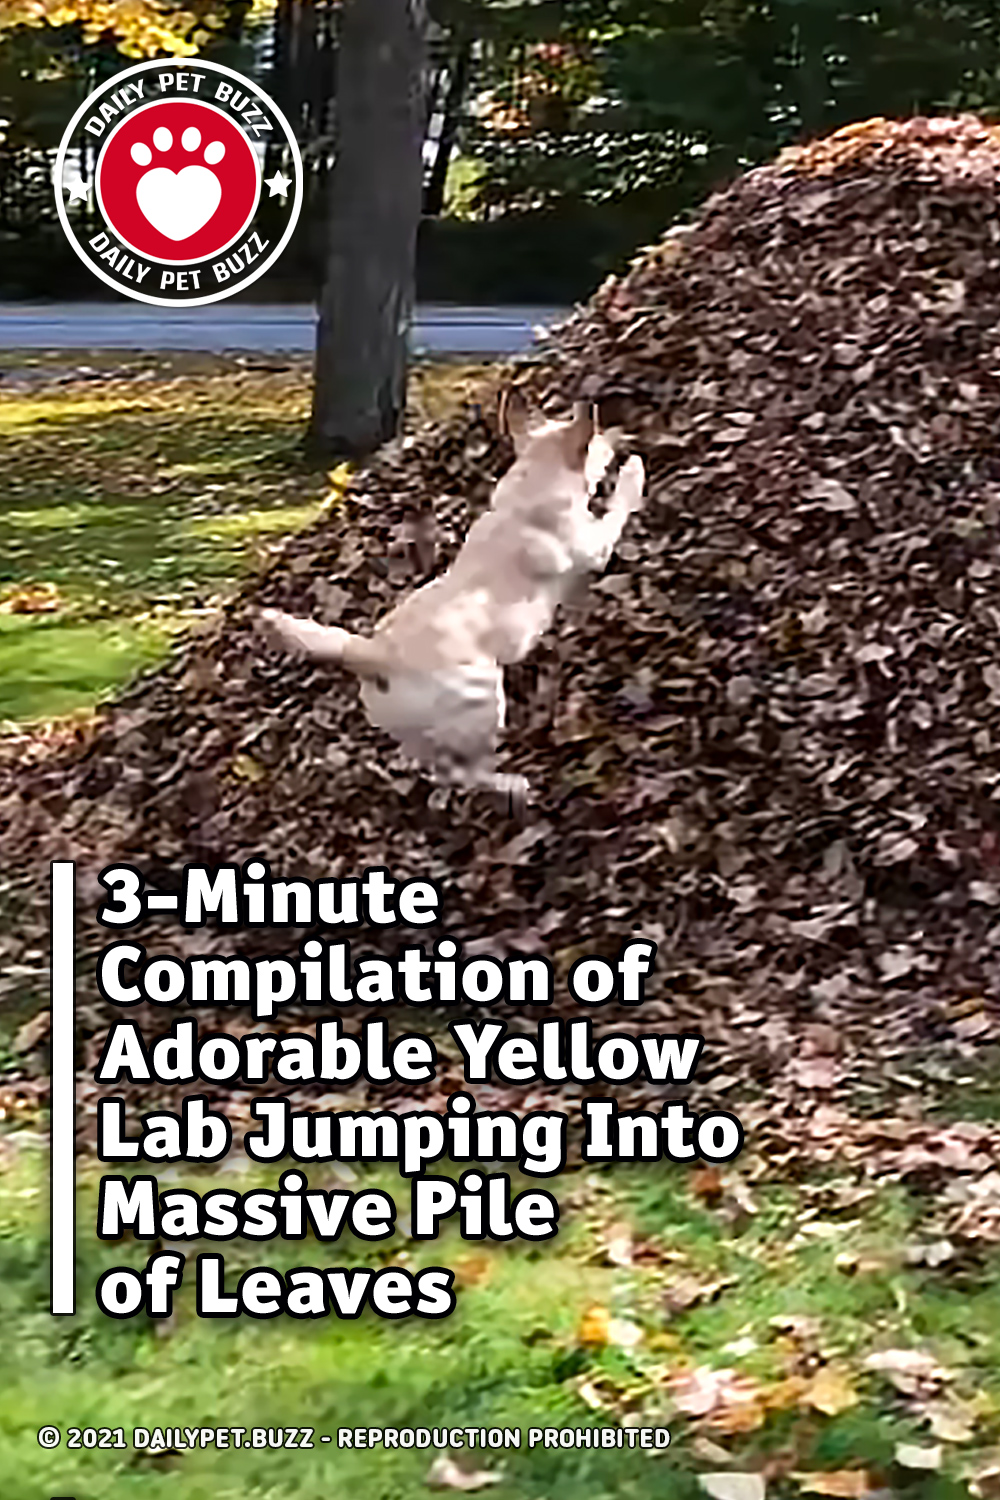 3-Minute Compilation of Adorable Yellow Lab Jumping Into Massive Pile of Leaves